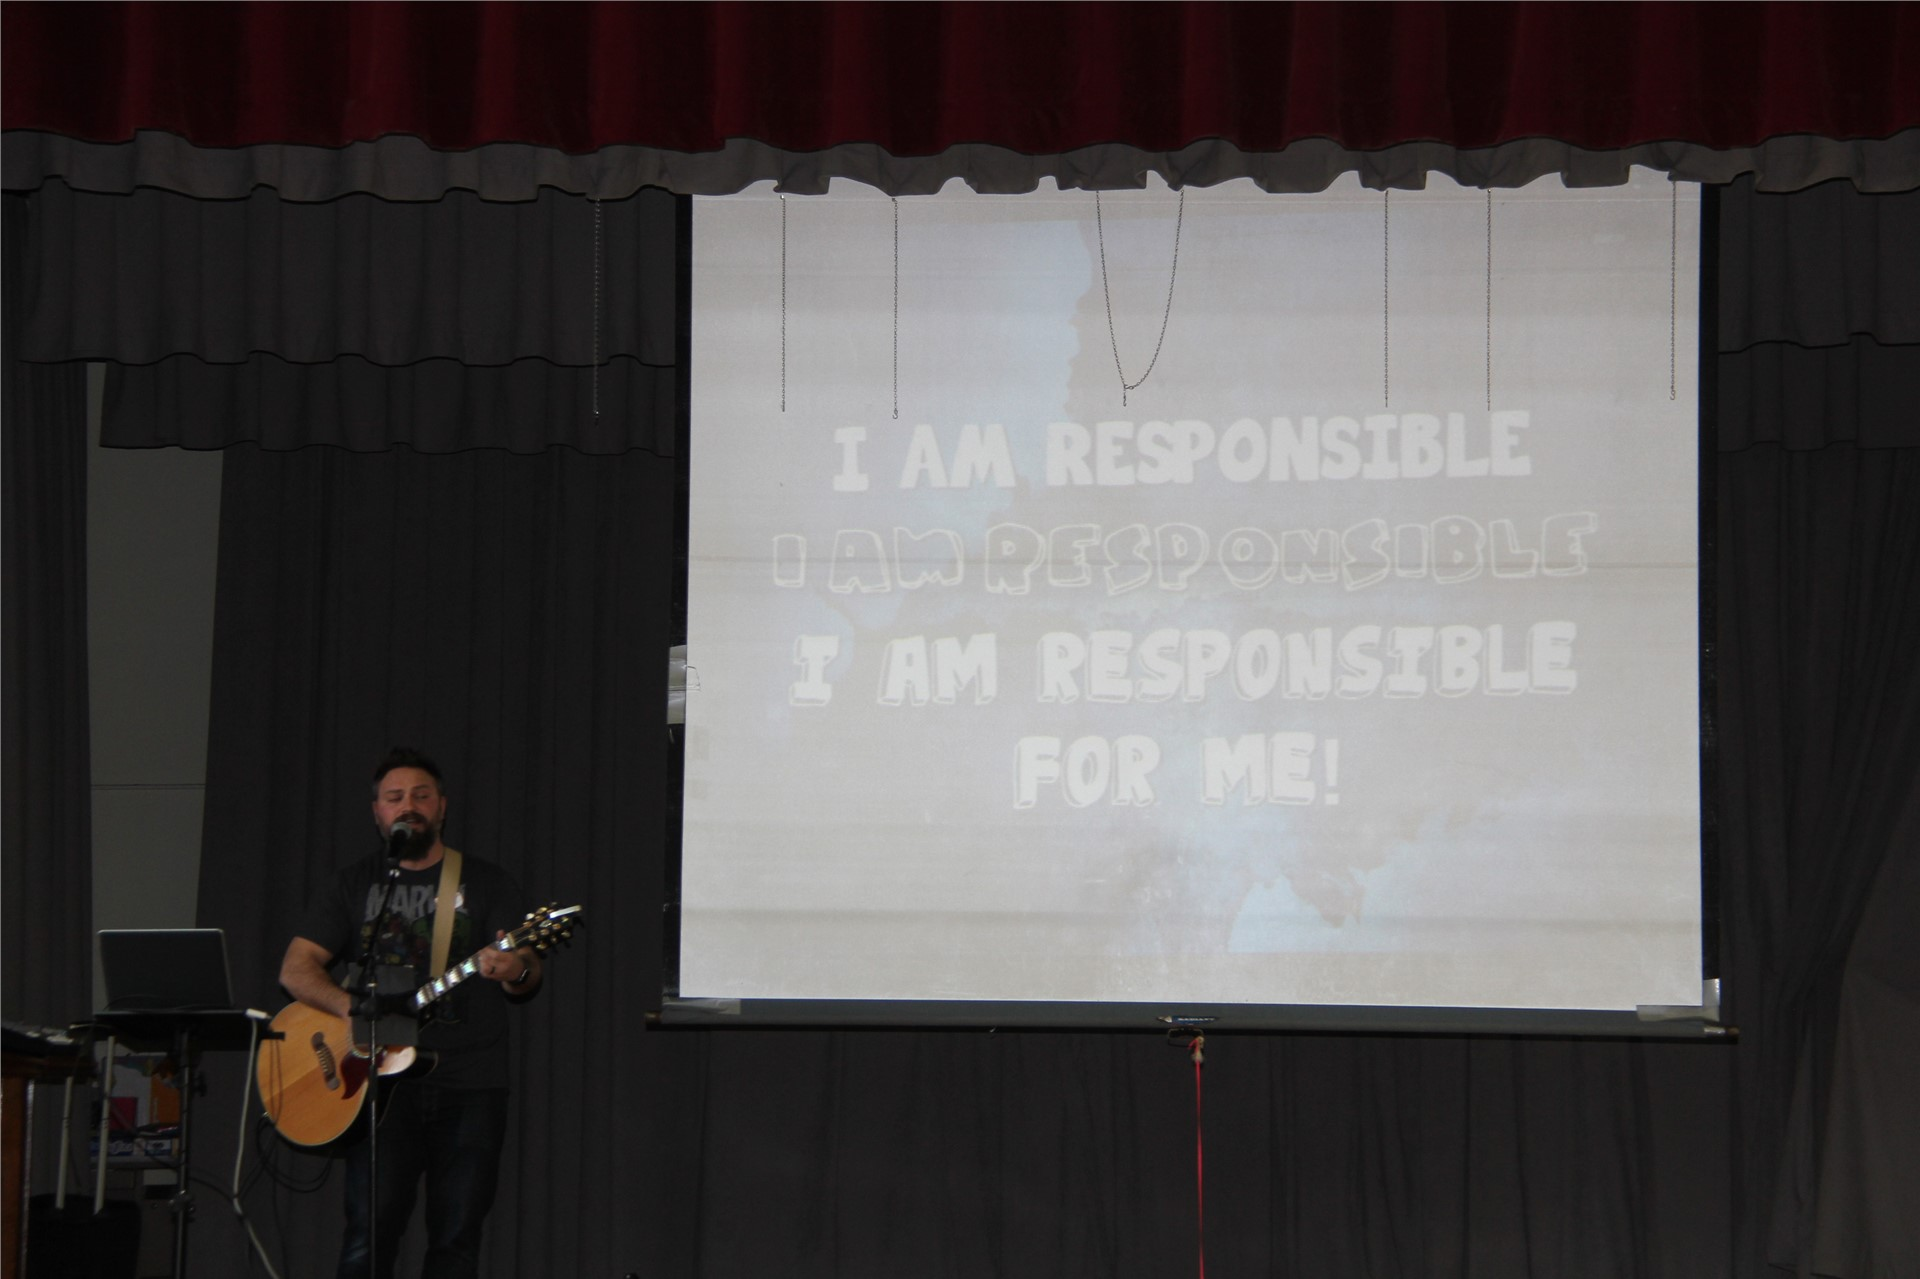 jared campbell peforming in front of powerpoint projection